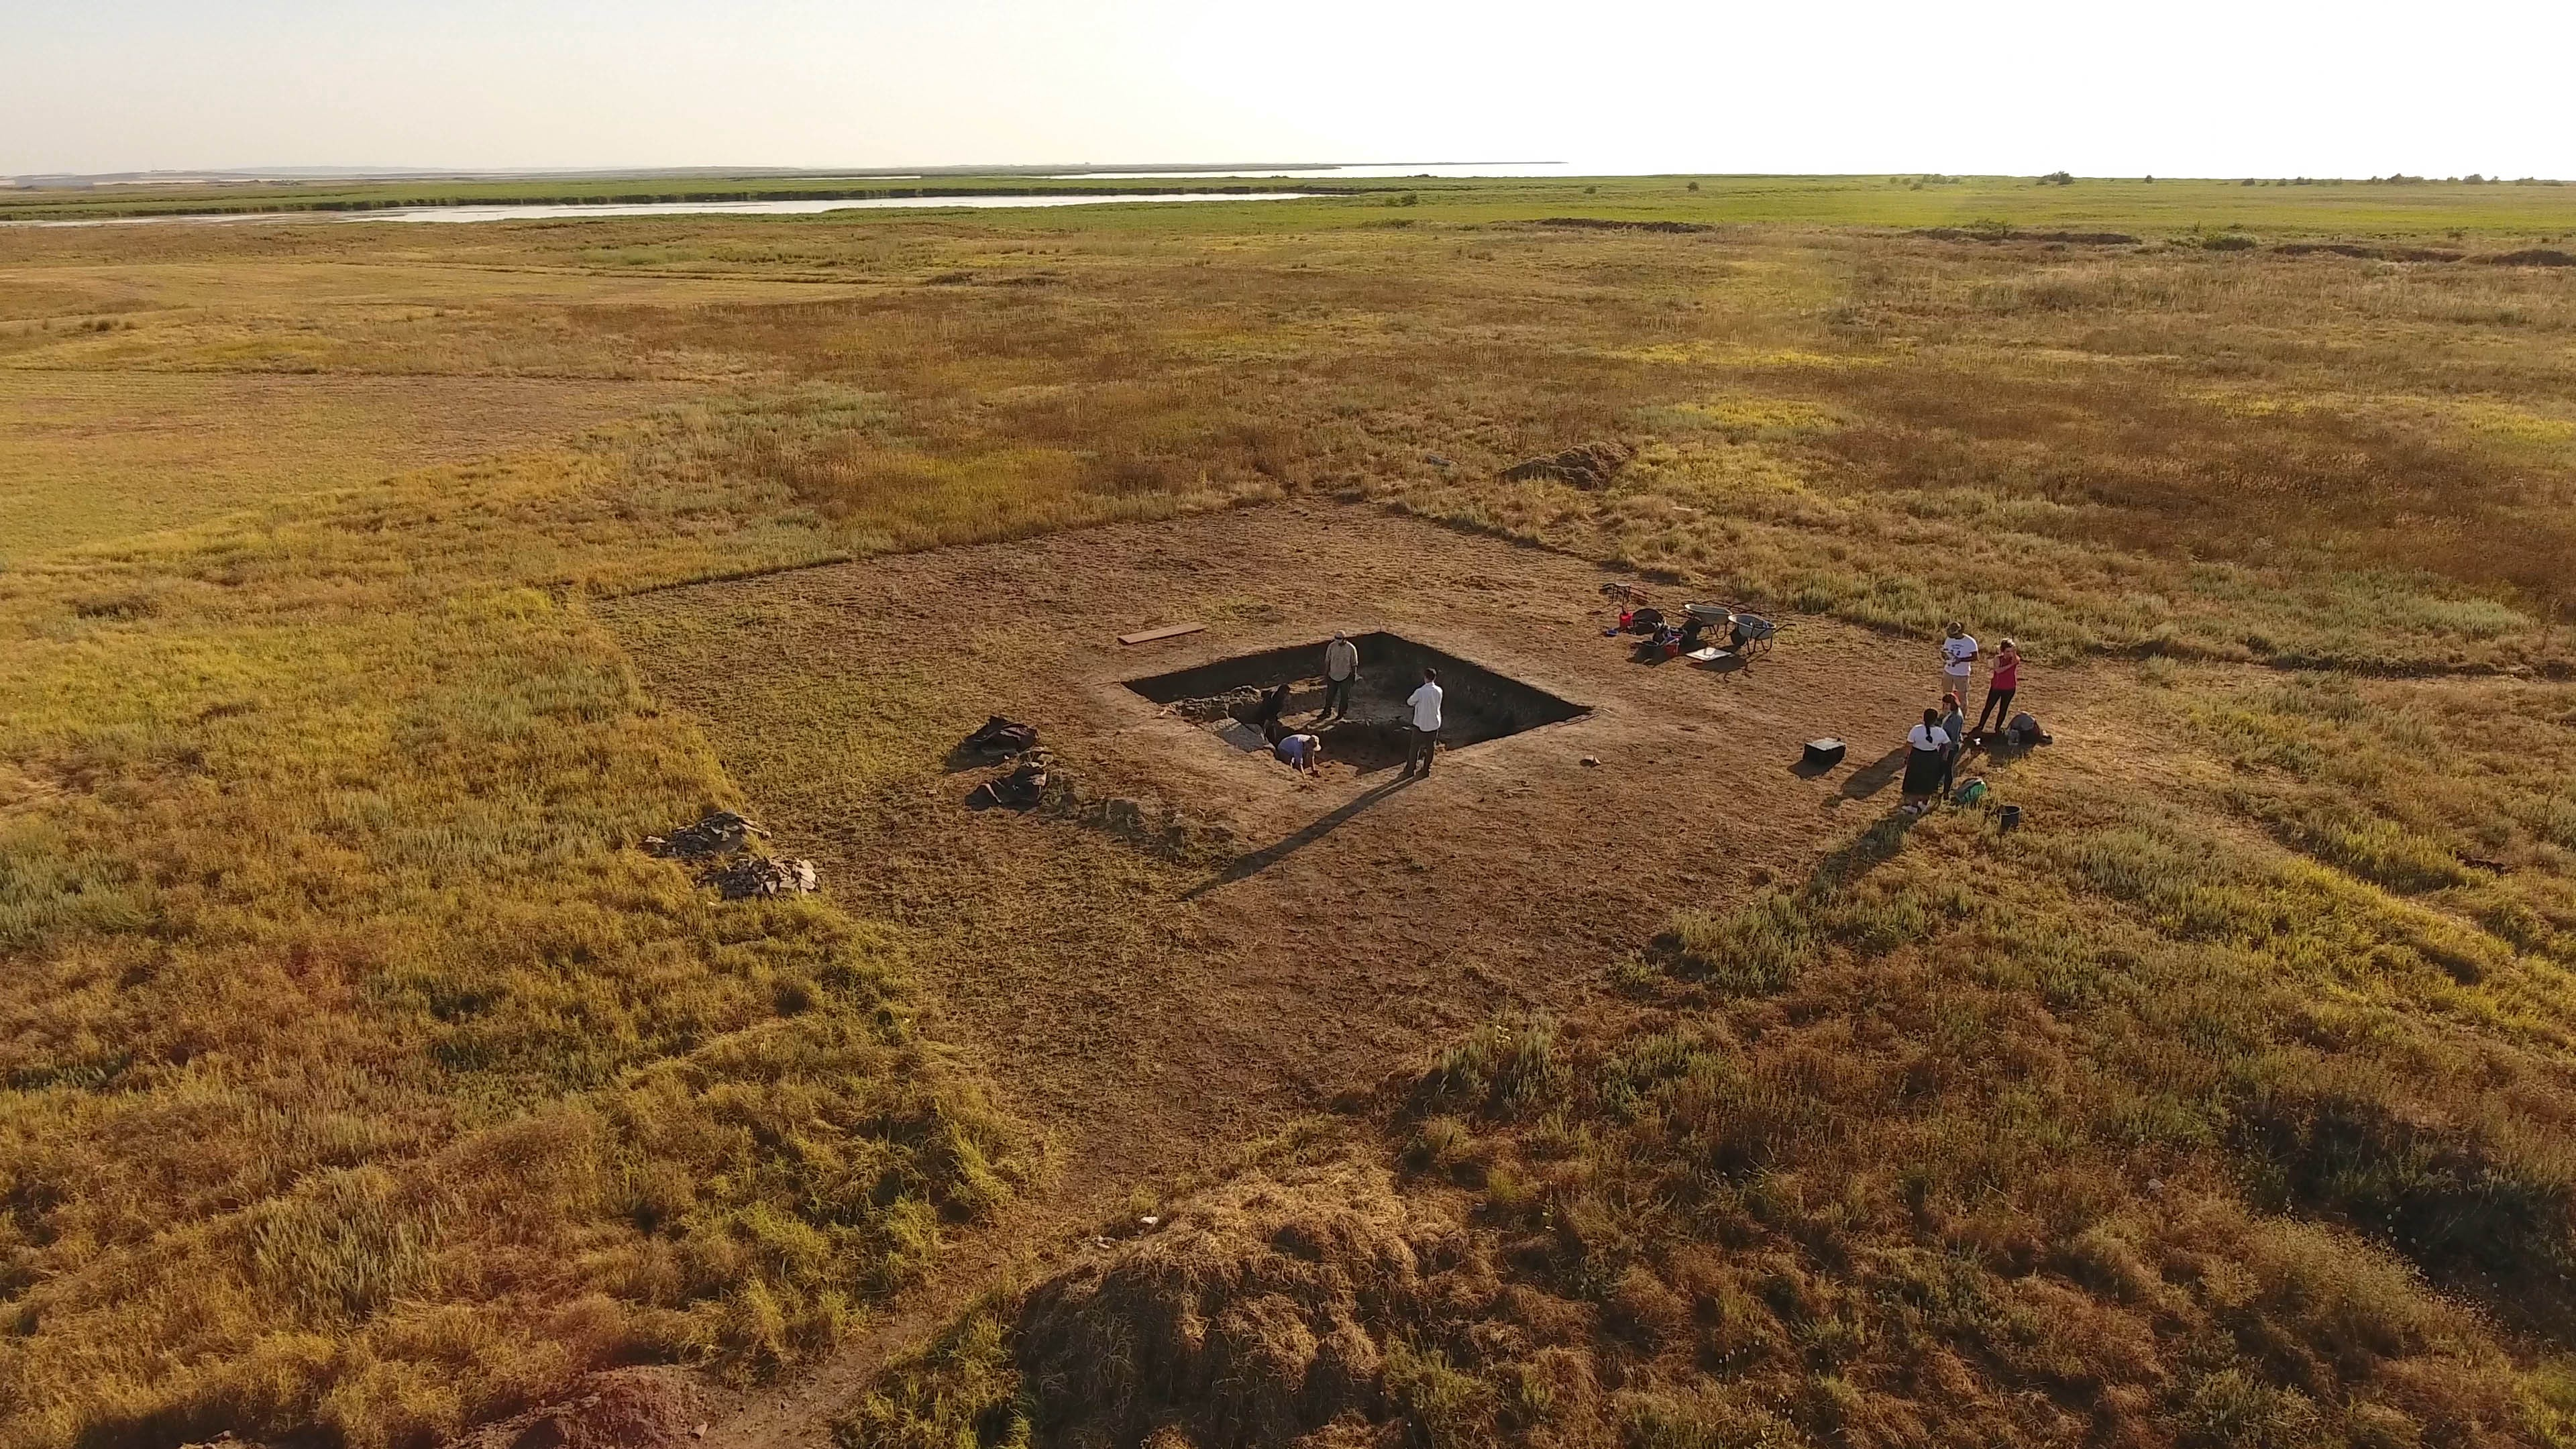 UT archaeologists excavate a field in Romania that was once the site of the ancient Histria civilization.